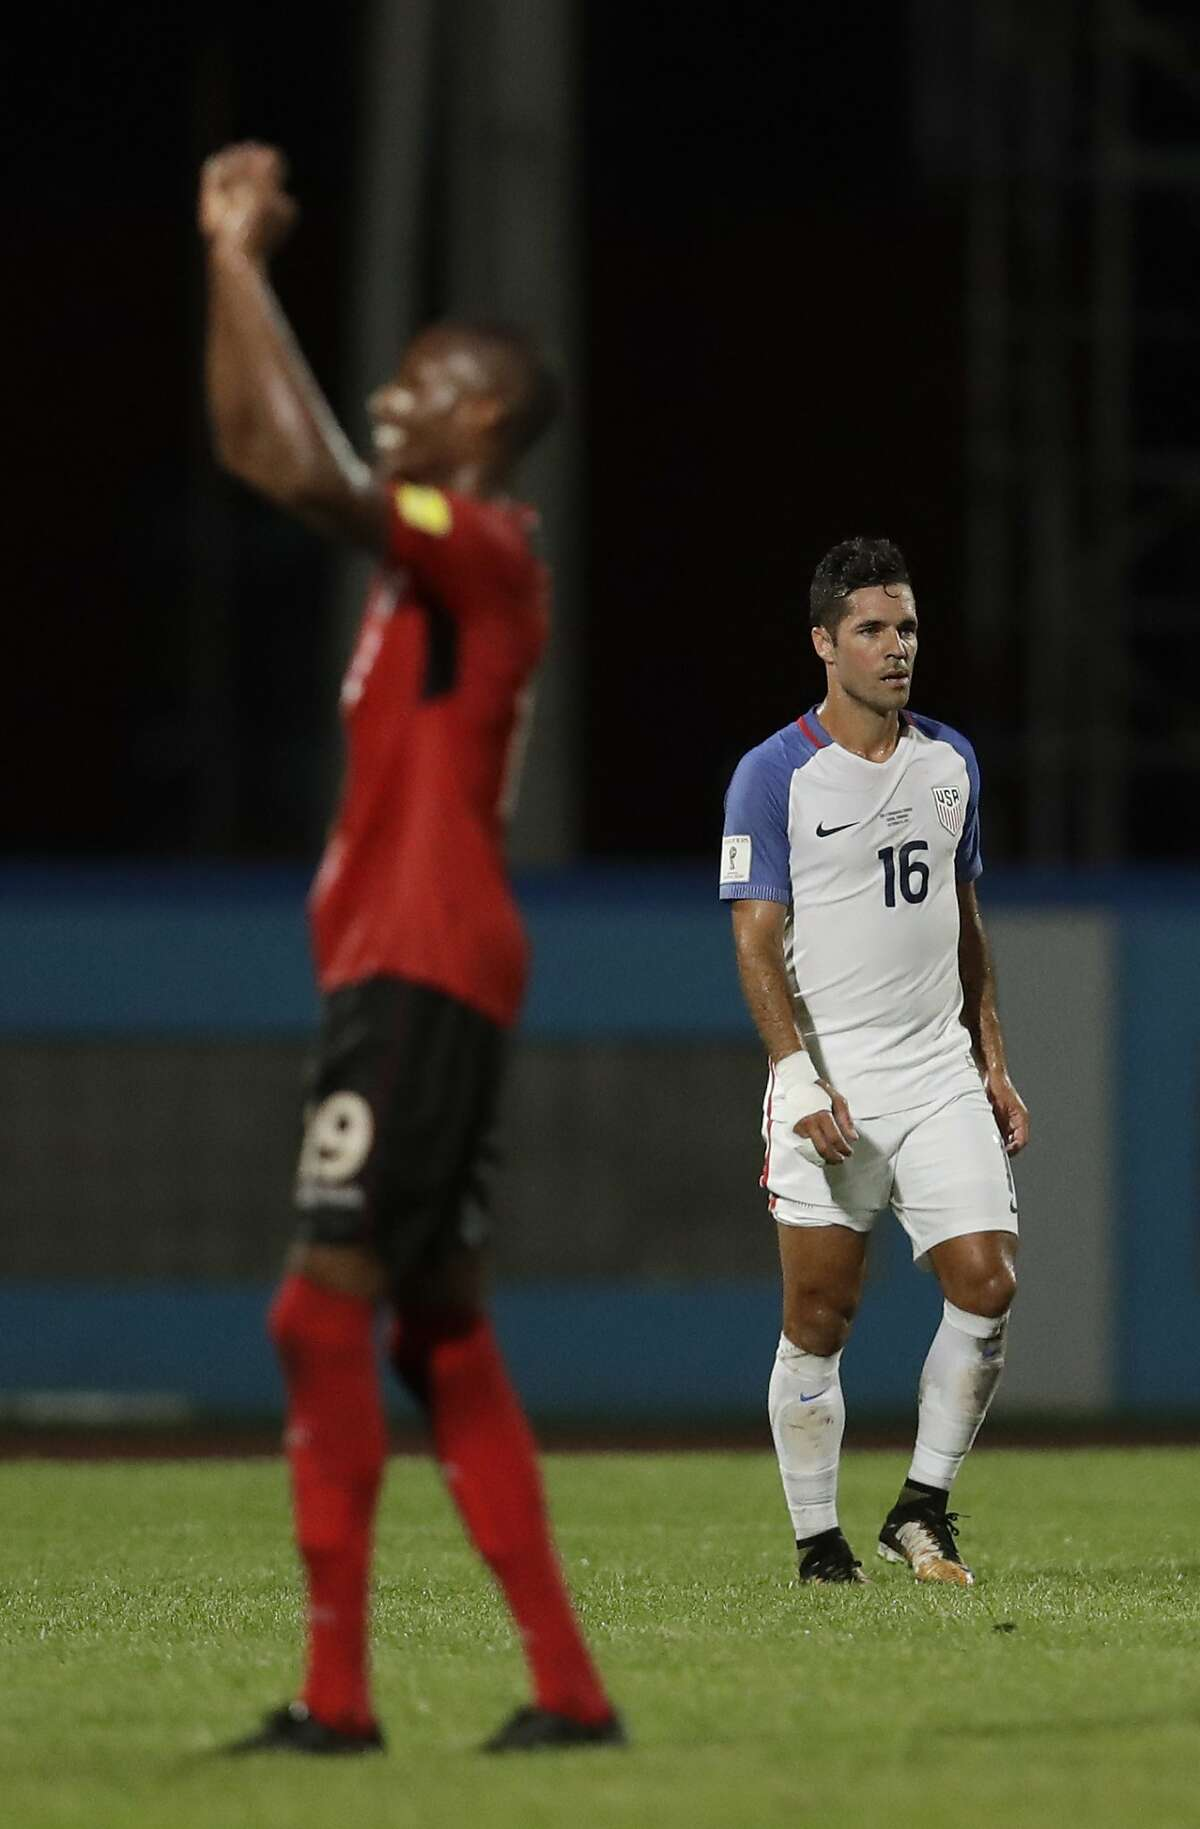 United States' Benny Feilhaber, right, walks off the field as Trinidad and Tobago's Kevan George celebrates defeating the U.S. in their final World Cup qualifying match at Ato Boldon Stadium in Couva, Trinidad and Tobago, Tuesday, Oct. 10, 2017. (AP Photo/Rebecca Blackwell)